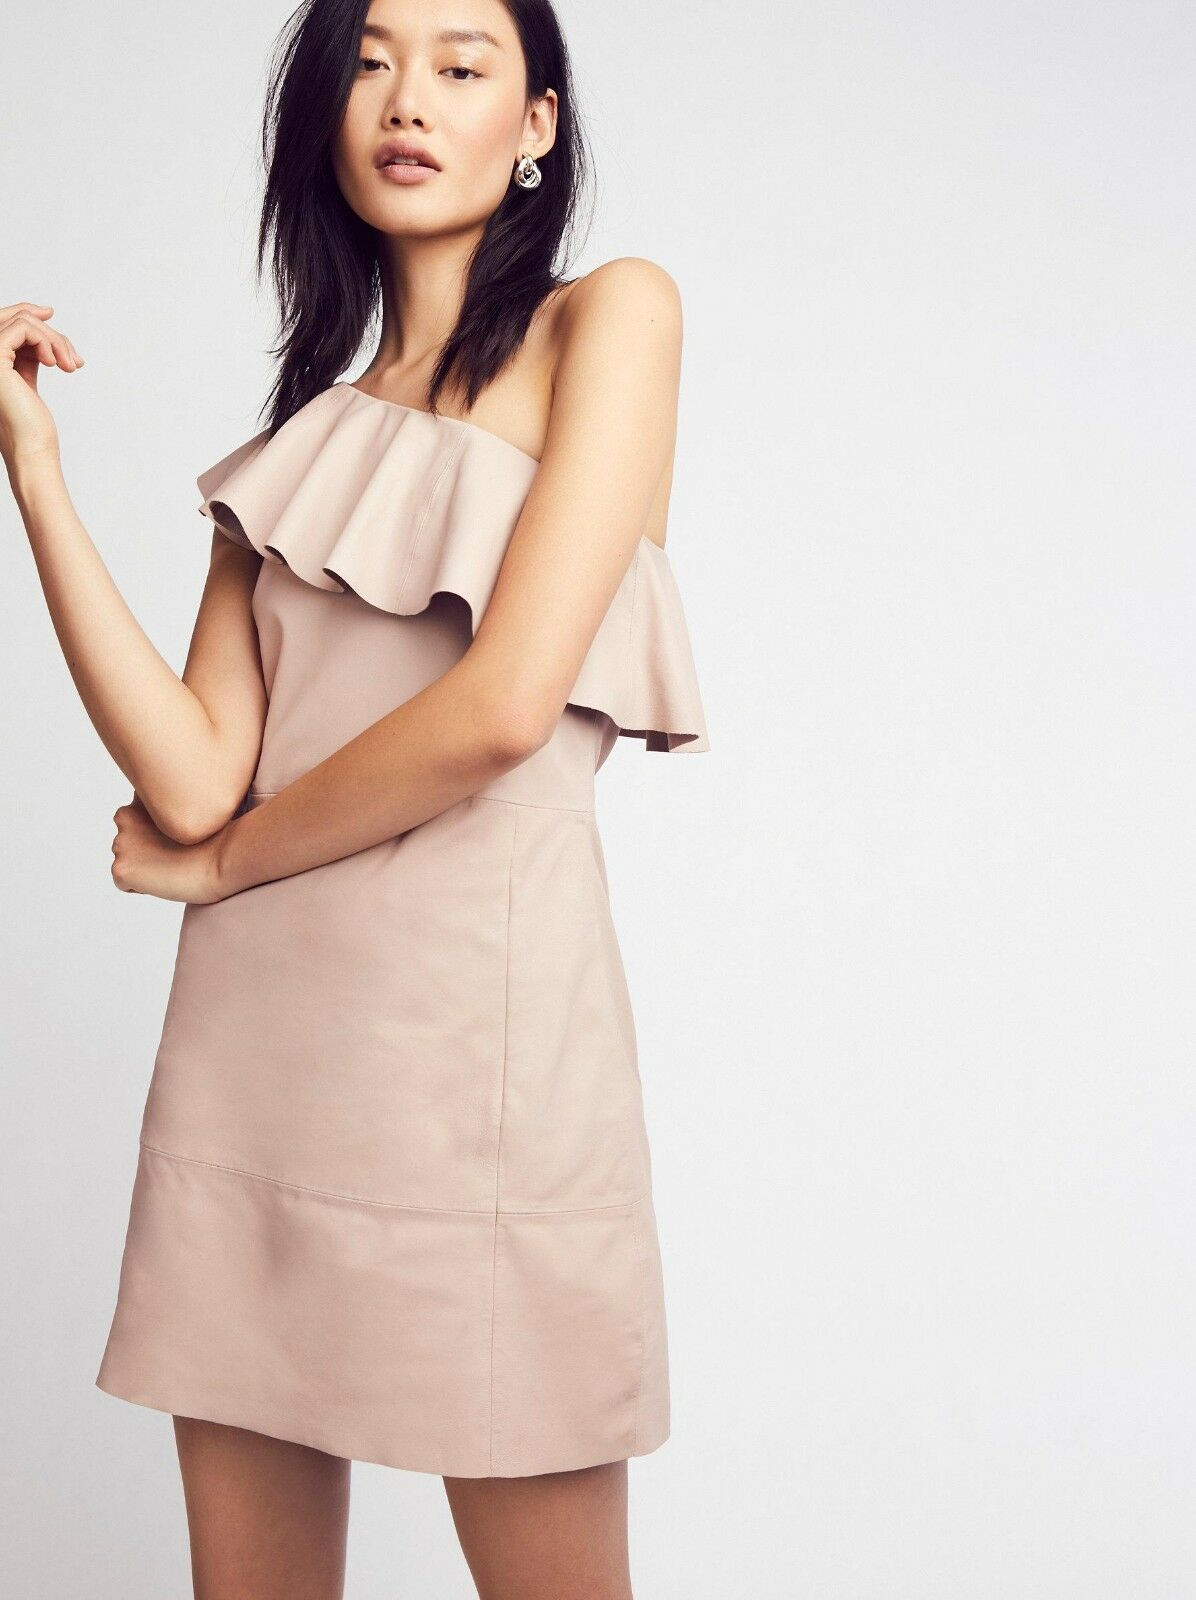 NEW Free People  350 Dusty pink Natalie One Shoulder Leather Mini Dress Size S